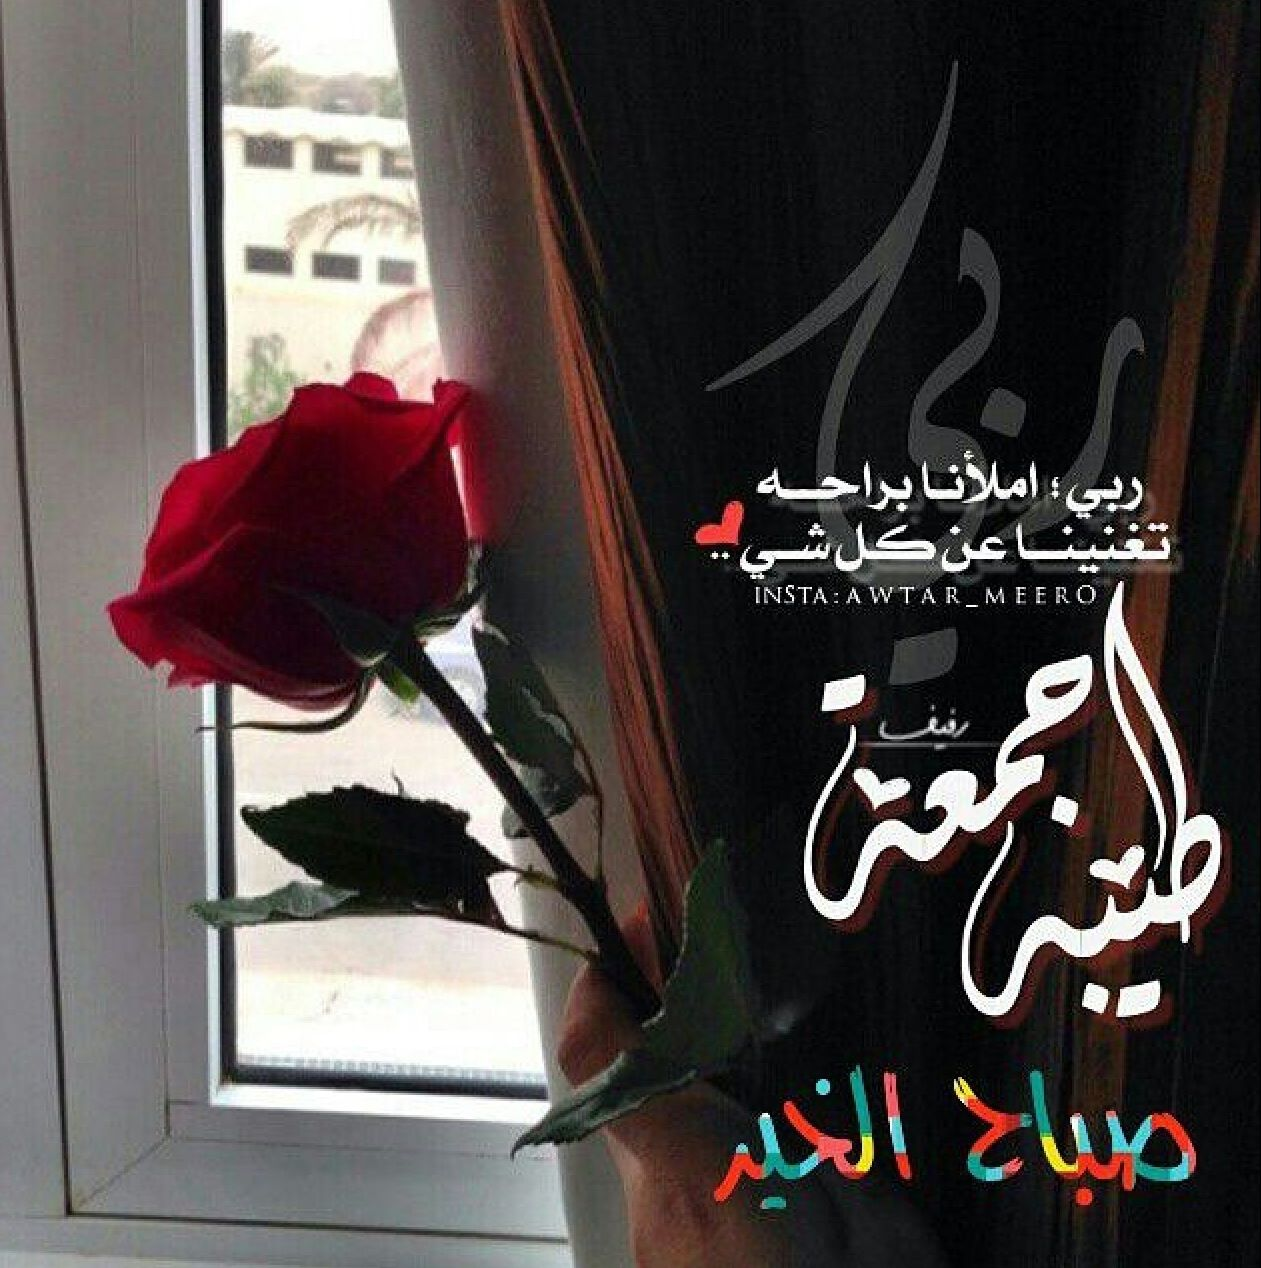 Desertrose جمعة طيبة Beautiful Flowers Wallpapers Blessed Friday Islamic Pictures